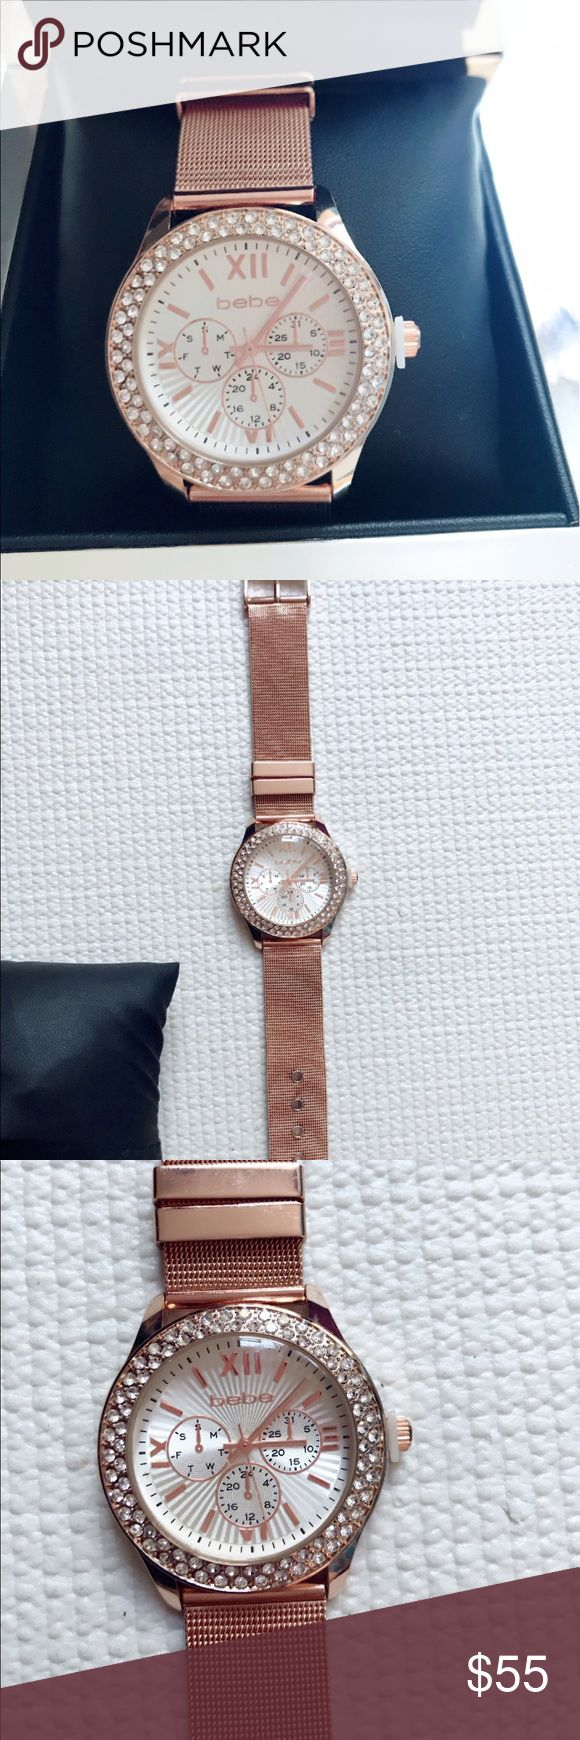 💝Bebe Authentic Watch Rose Gold Authentic Rose Gold Bebe Watch. Stainless steel caseback  style BEB5066. With battery, none of the stones are missing and comes with the original box. New from the store. bebe Accessories Watches